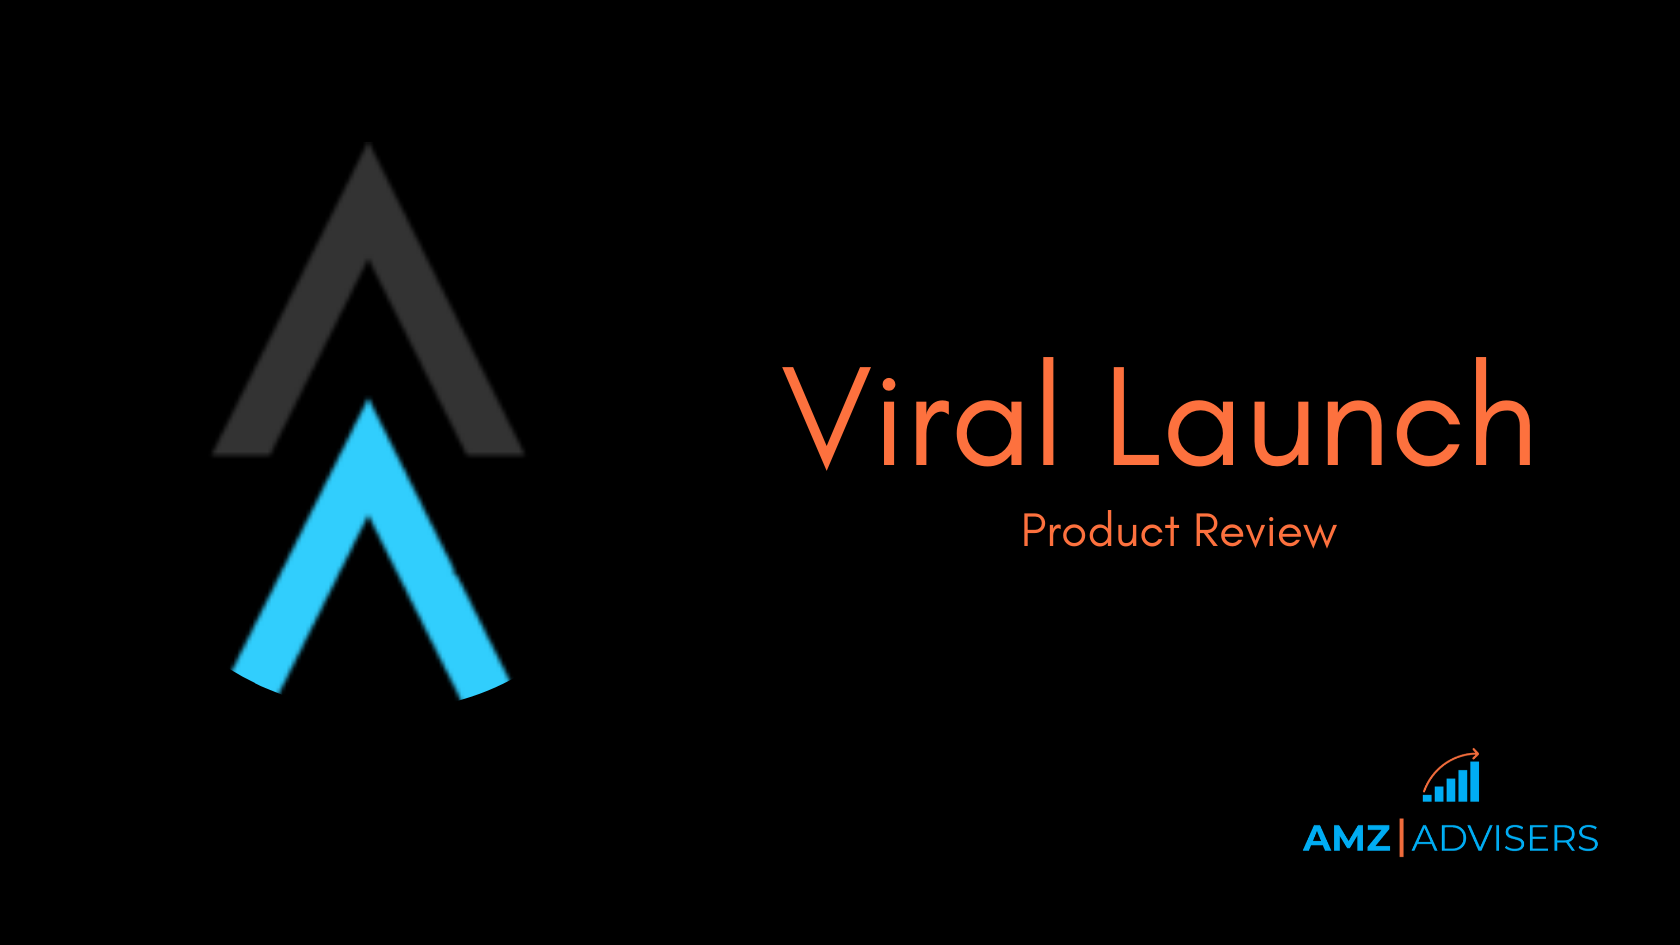 viral-launch.png